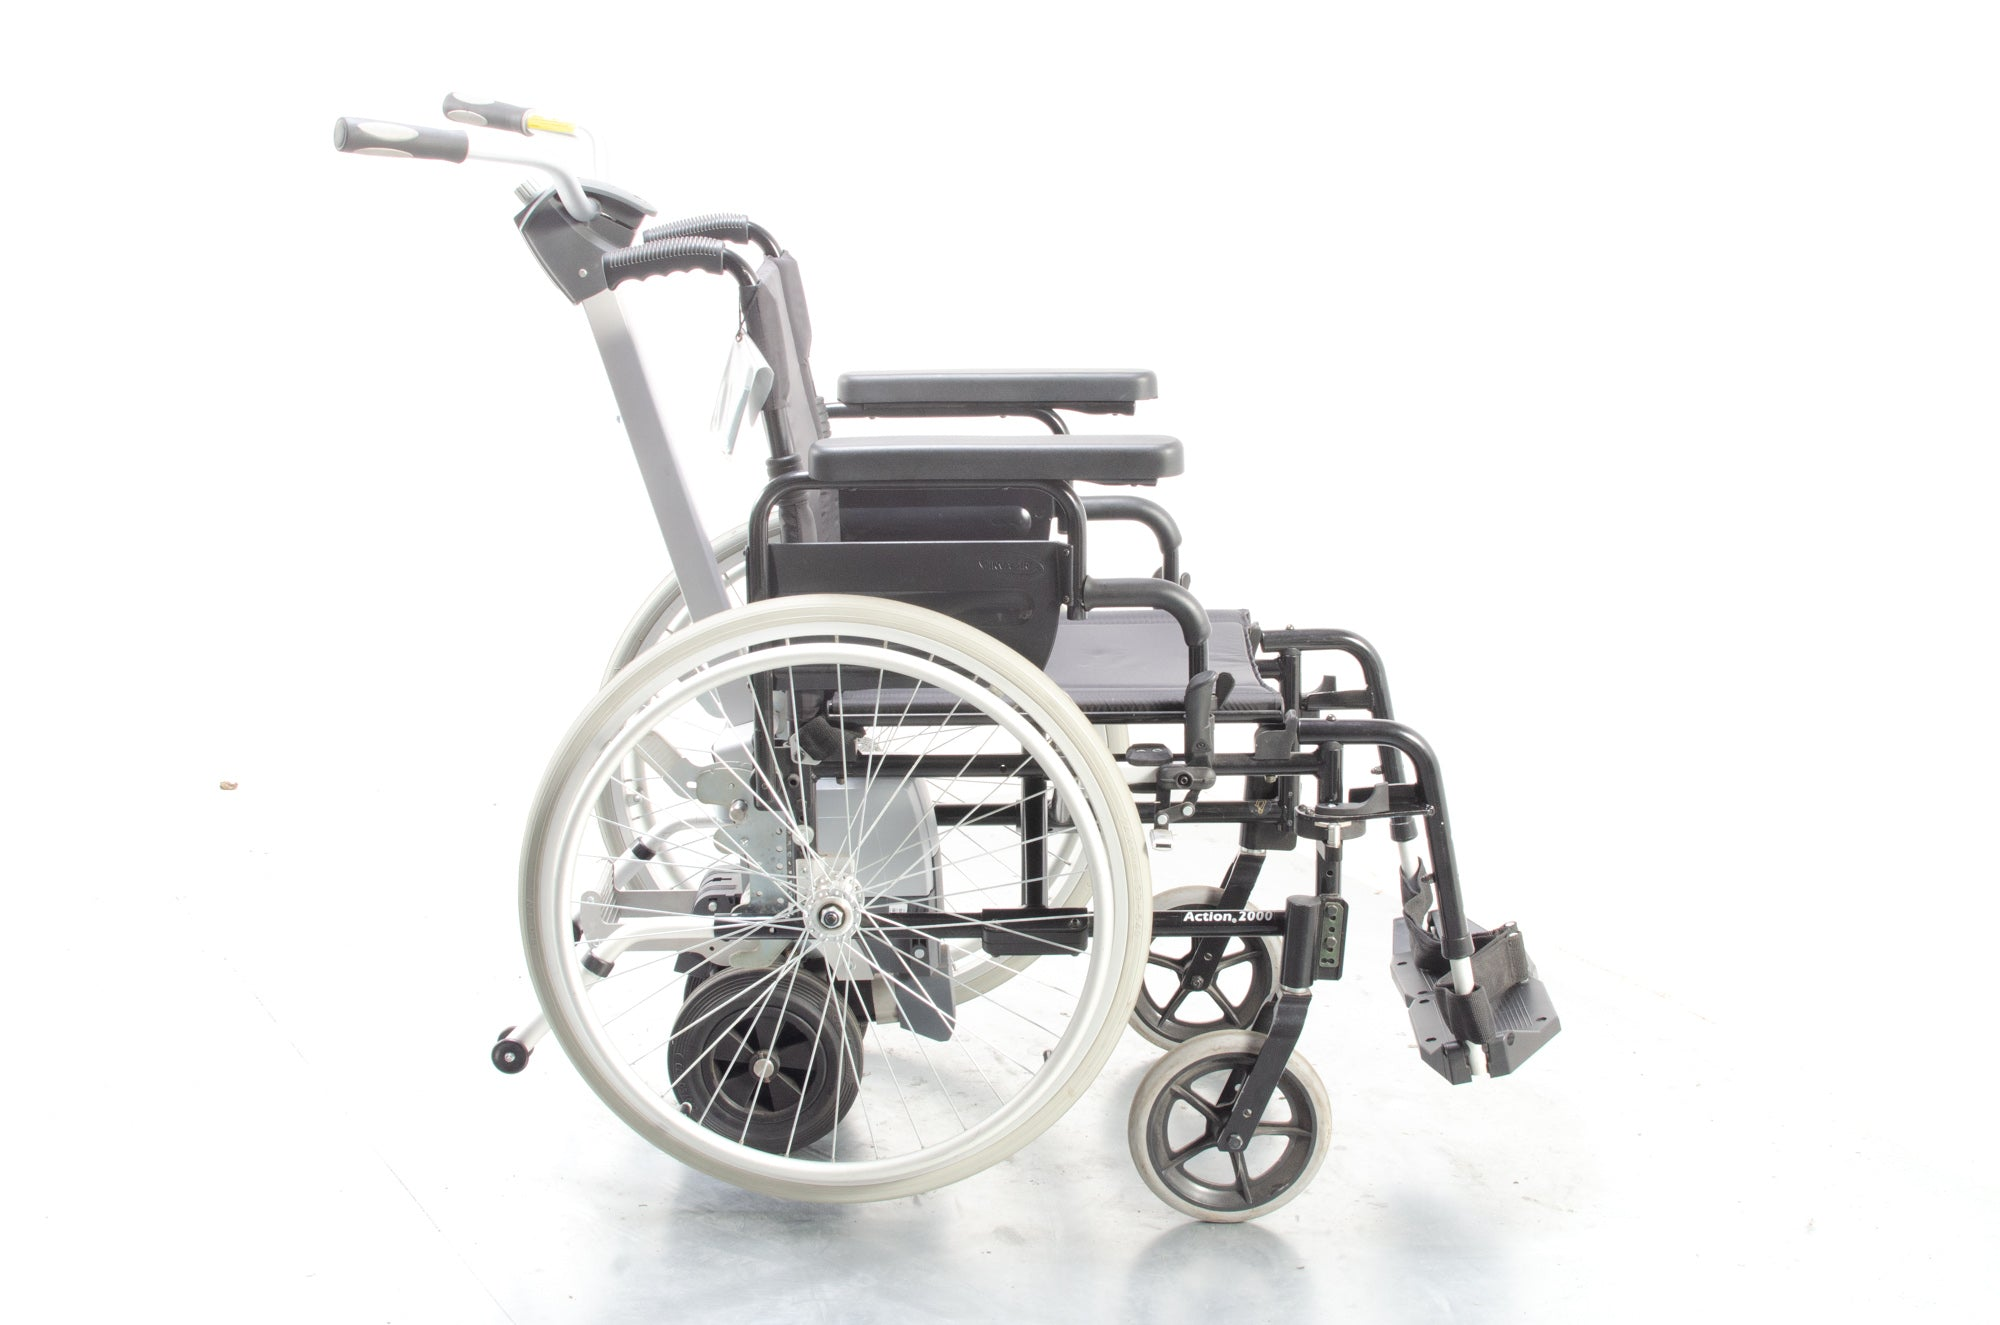 Alber Viamobil Eco V14 Attendant Wheelchair Power Pack from Invacare with Action 2000